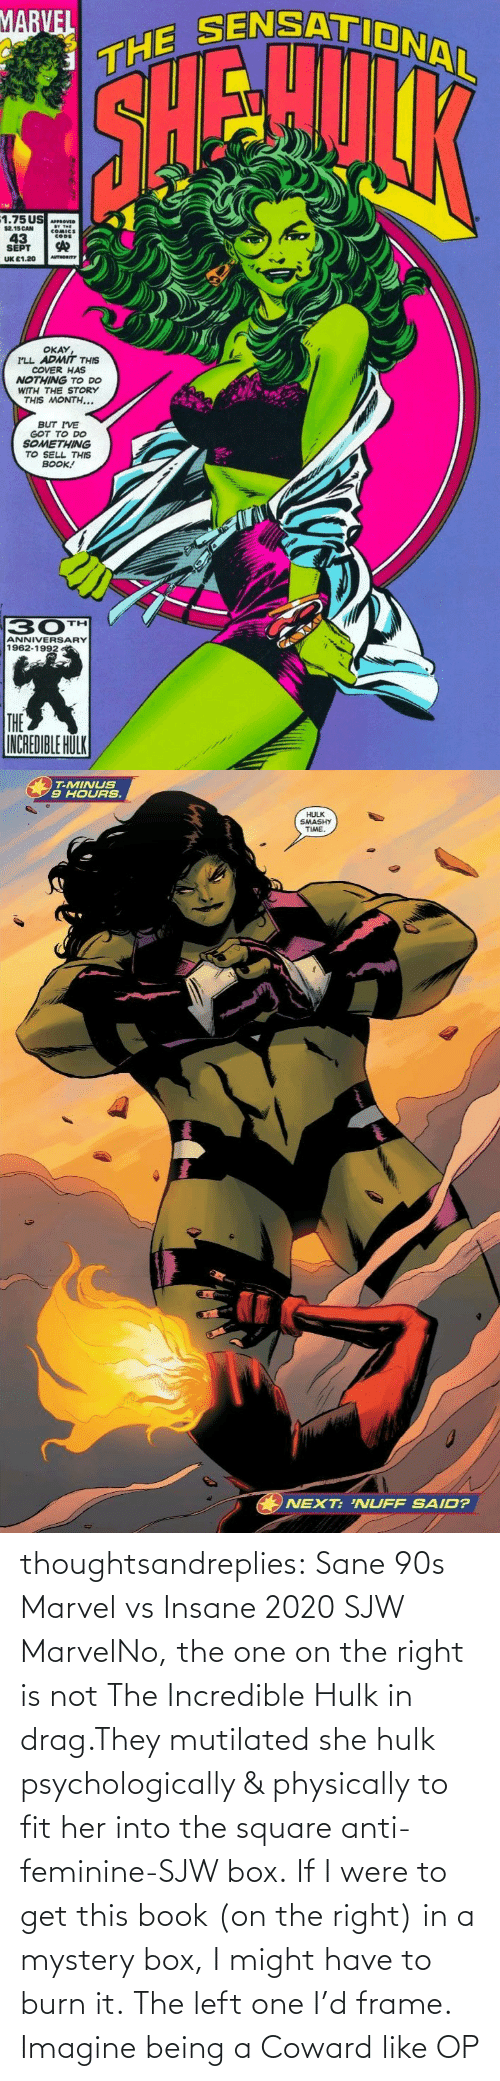 Into: thoughtsandreplies:  Sane 90s Marvel vs Insane 2020 SJW MarvelNo, the one on the right is not The Incredible Hulk in drag.They mutilated she hulk psychologically & physically to fit her into the square anti-feminine-SJW box. If I were to get this book (on the right) in a mystery box, I might have to burn it. The left one I'd frame.    Imagine being a Coward like OP